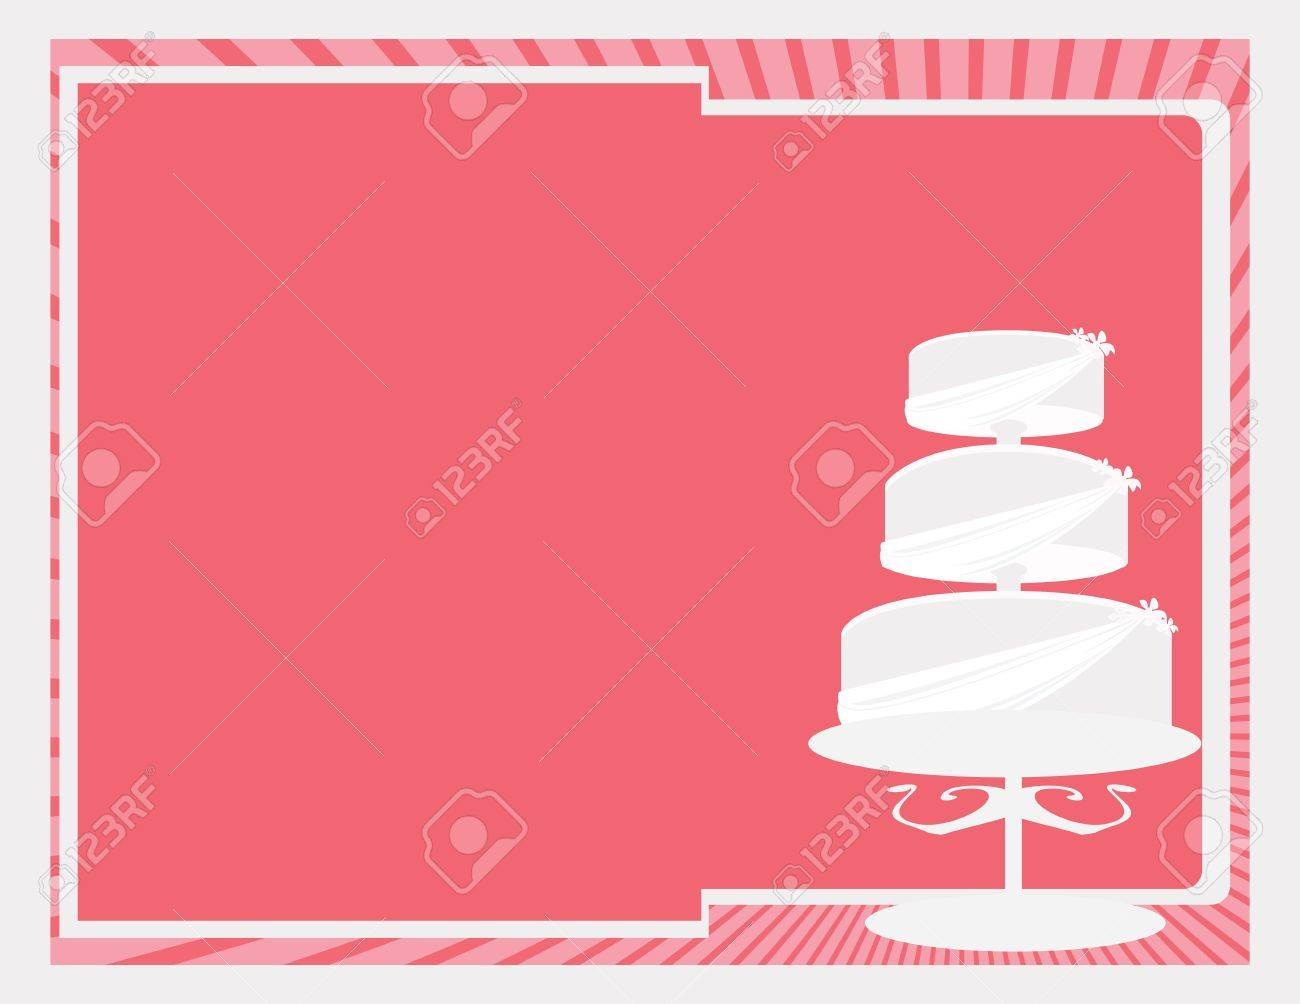 Near white three tier cake on a pink background Stock Vector - 7315114